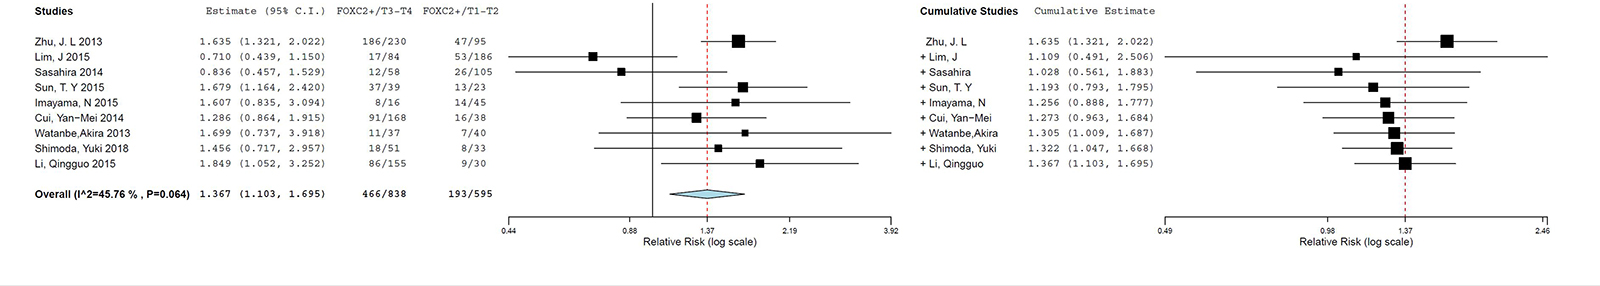 Pooled relative risk of FOXC2 expression in early- and late-stage tumors (meta-analysis of 9 studies).